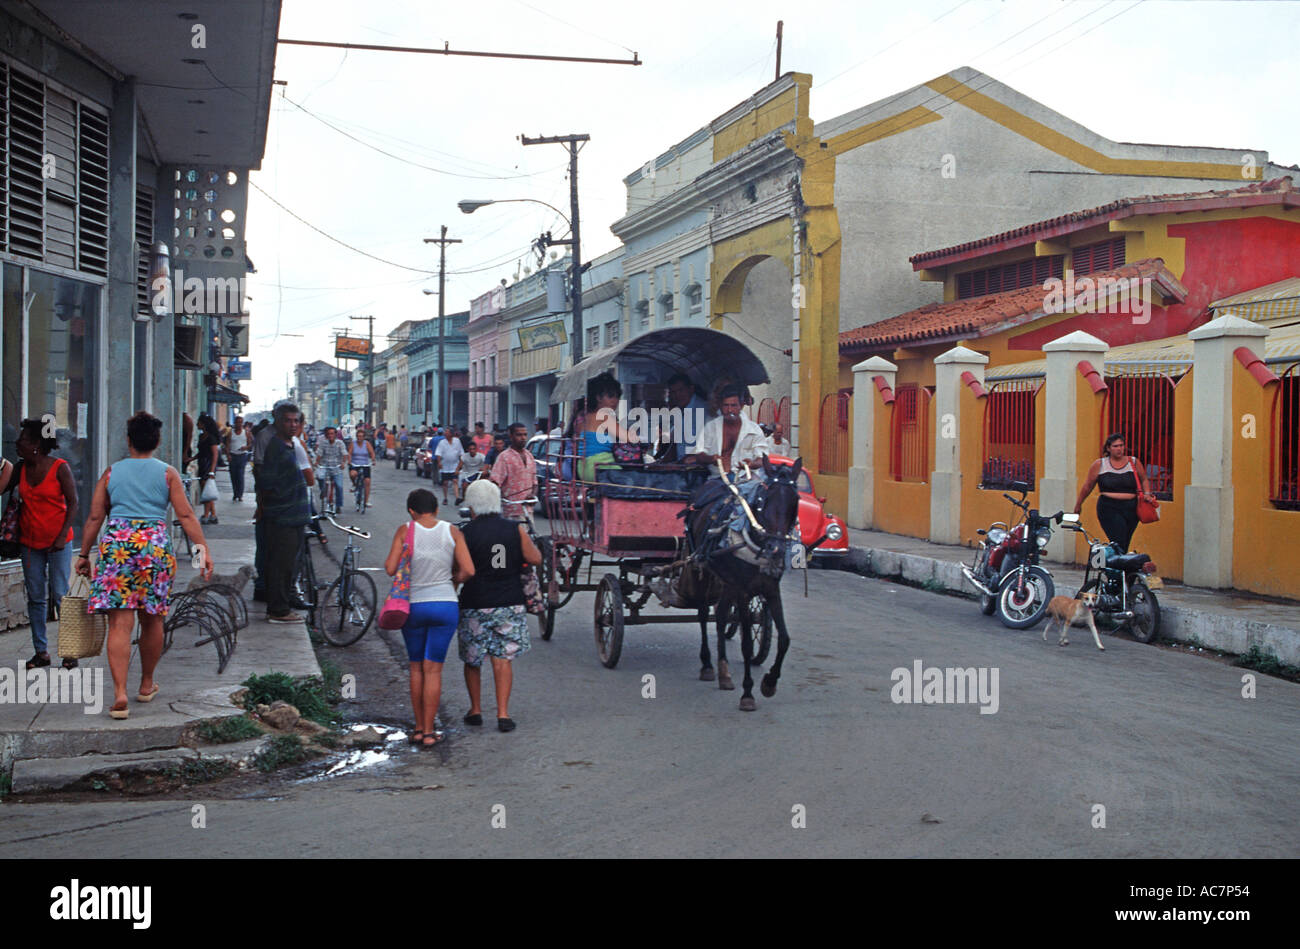 Street scene in Cardenas Cuba Horse drawn carriage in the street Brightly painted colonial buildings Cuba - Stock Image